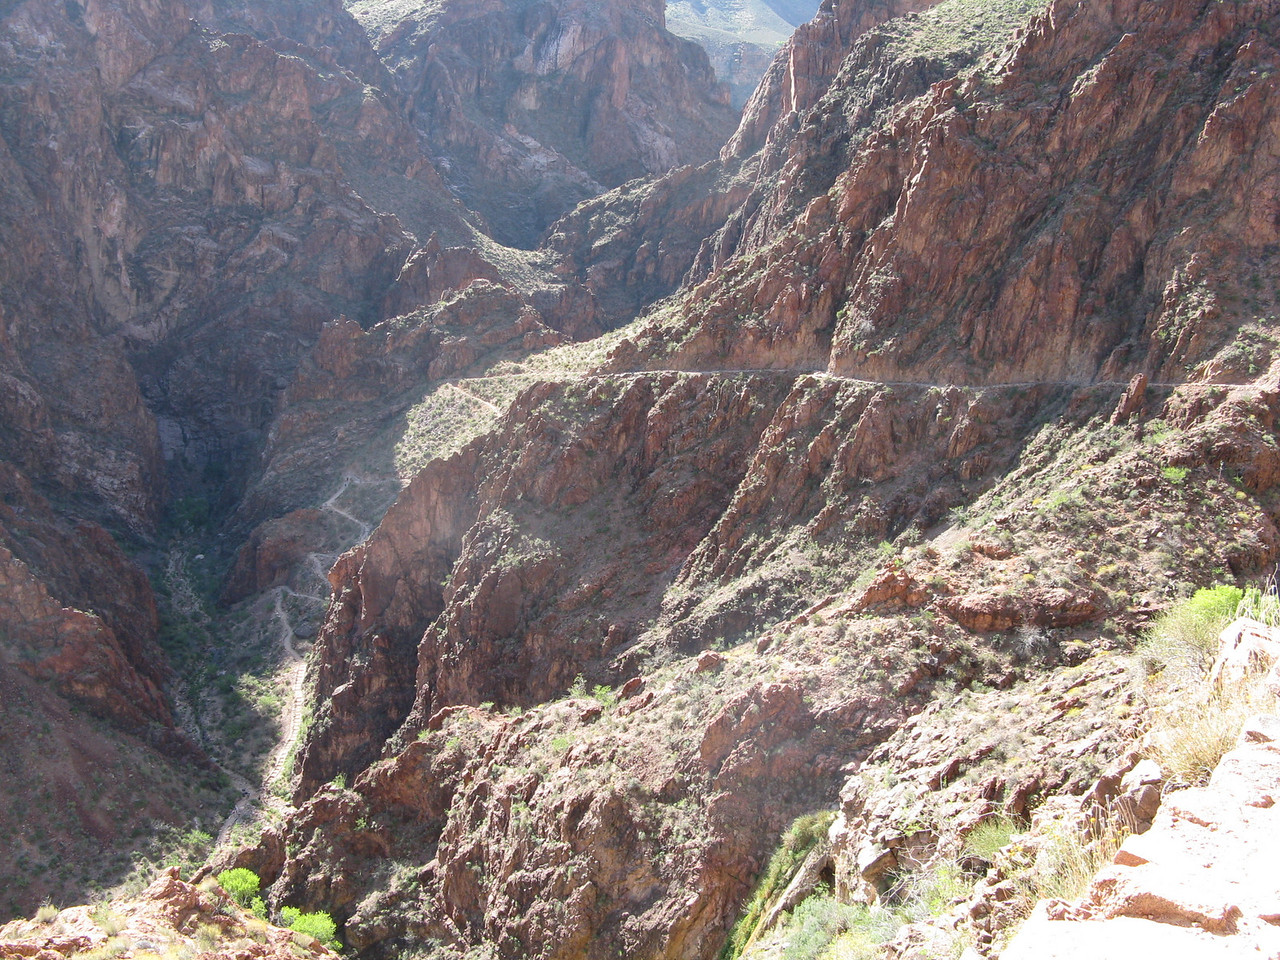 Looking back at the Devil's Corkscrew from above.  The switchbacks in the left lower quadrant are the corkscrew.  The trail across the rock face on the right side of the picture takes us out of the inner gorge of the canyon.